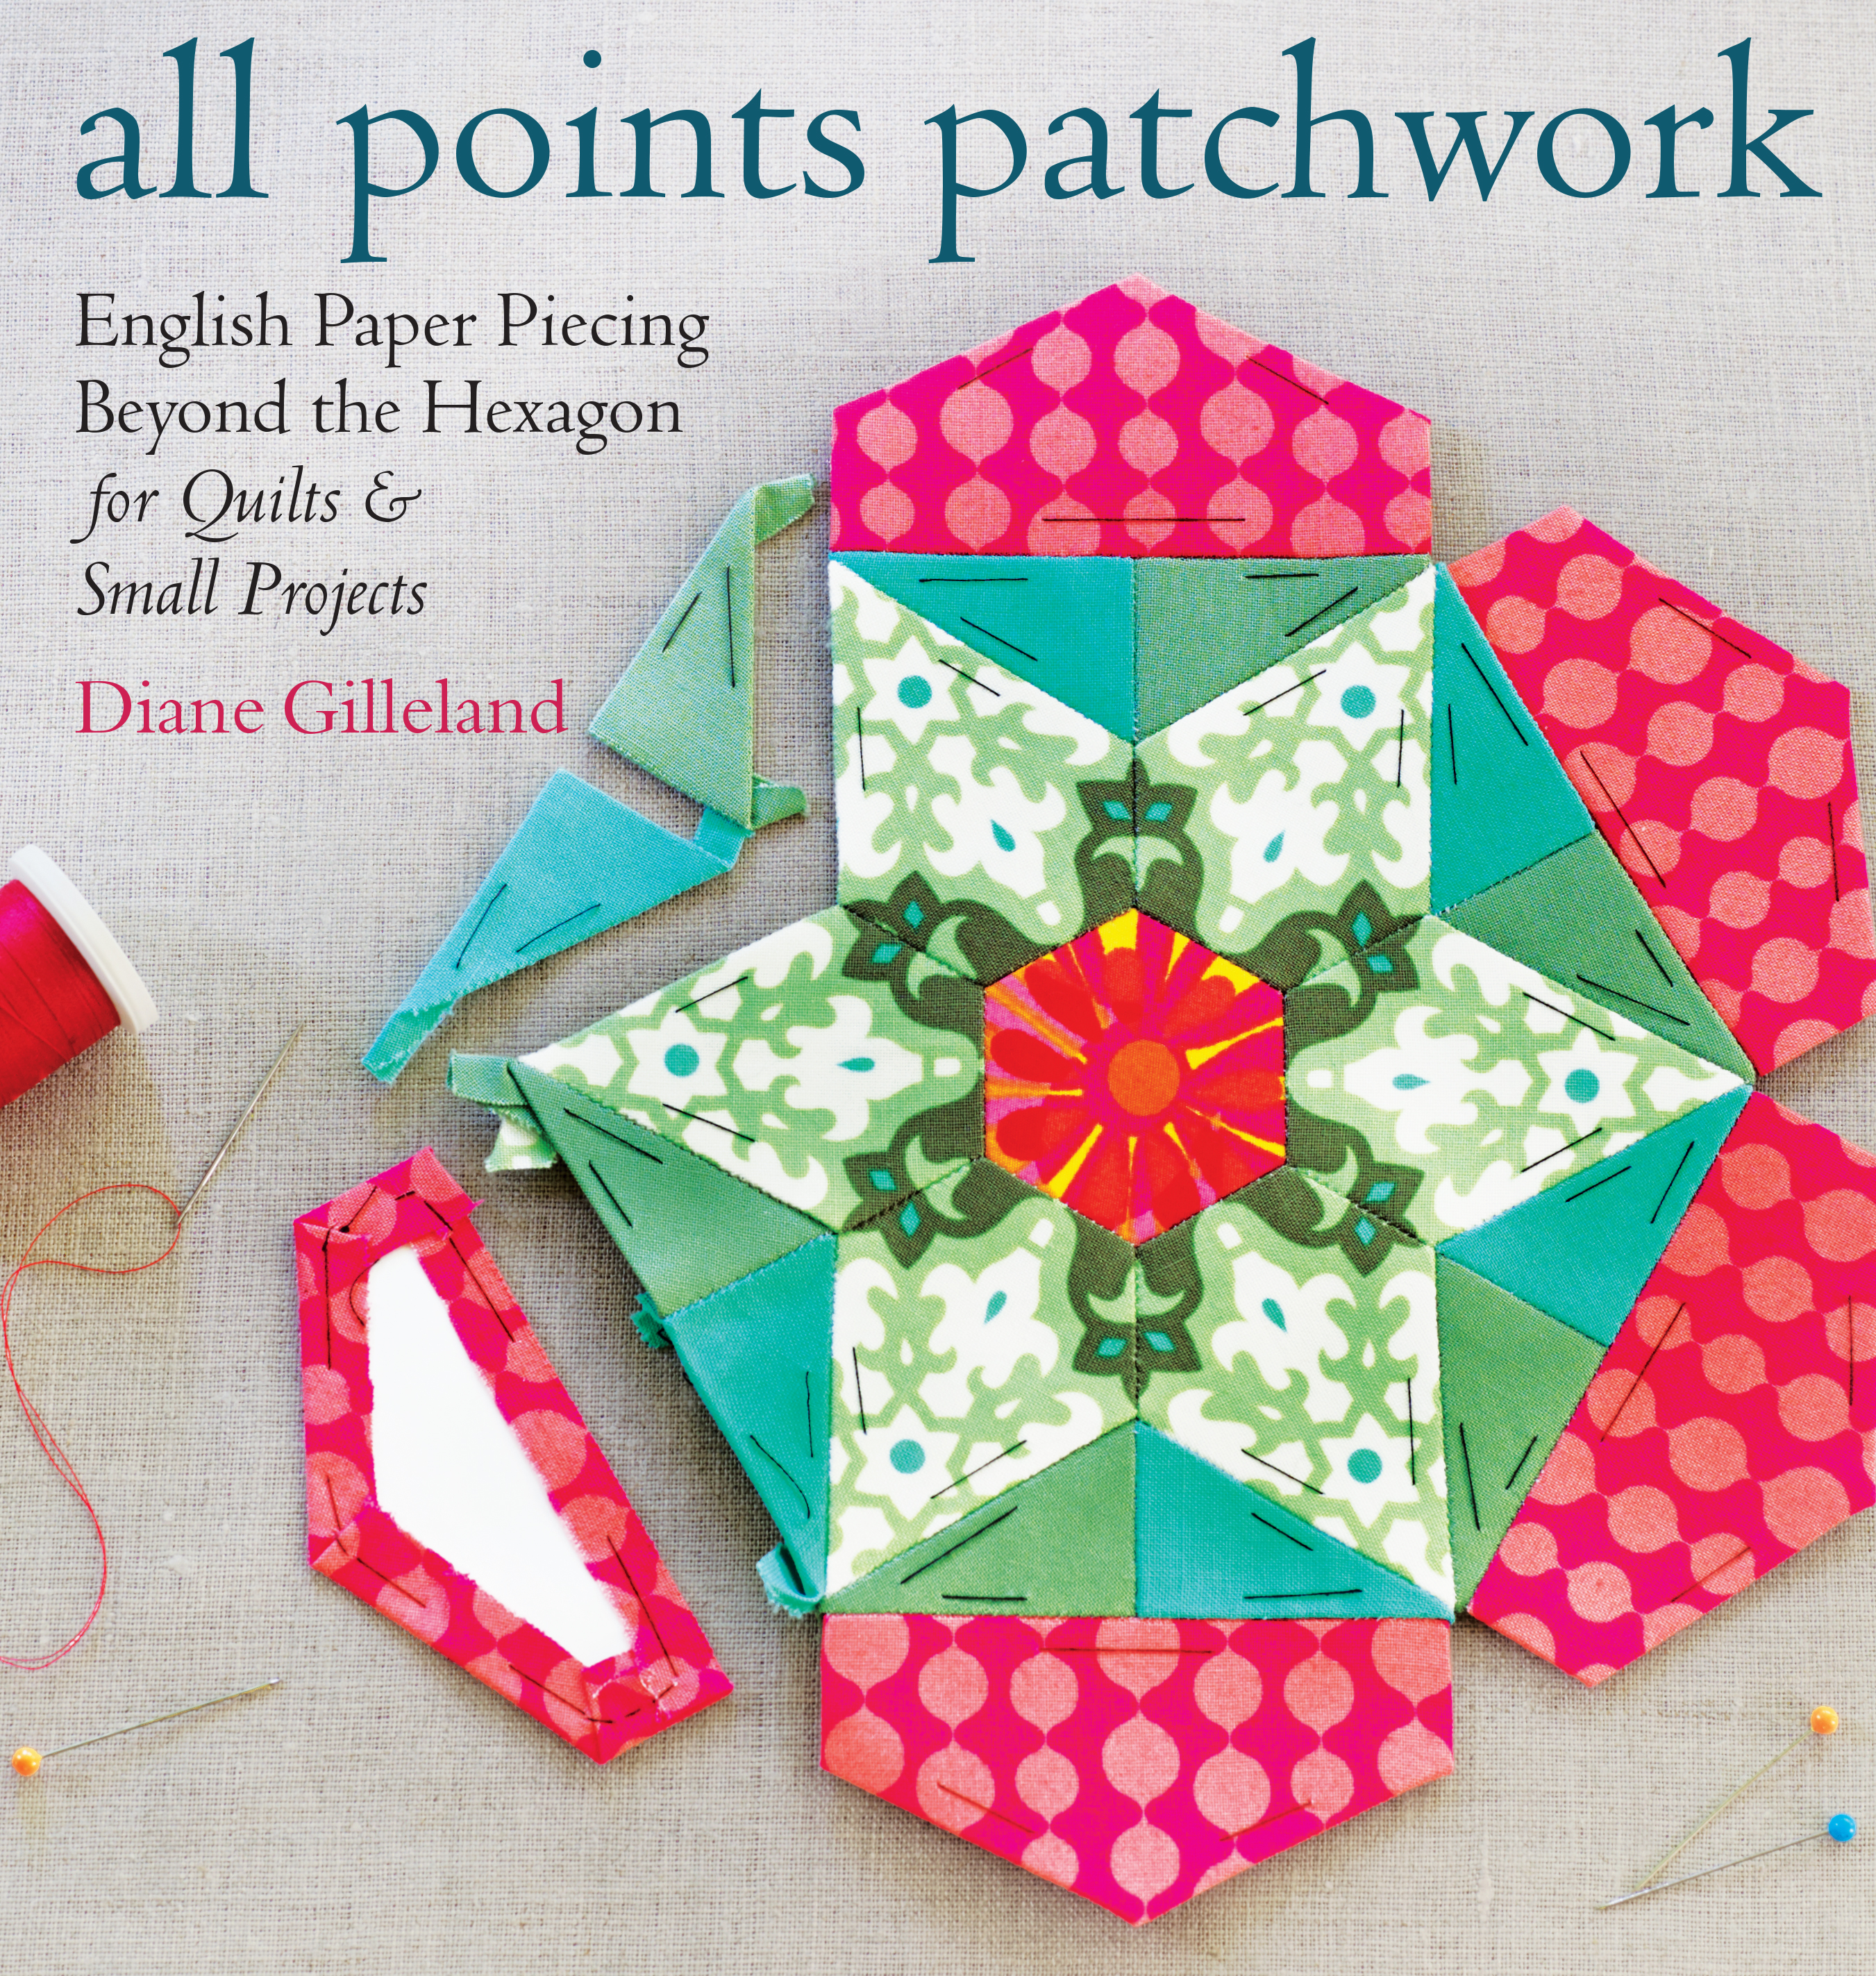 All Points Patchwork English Paper Piecing beyond the Hexagon for Quilts & Small Projects - Diane Gilleland